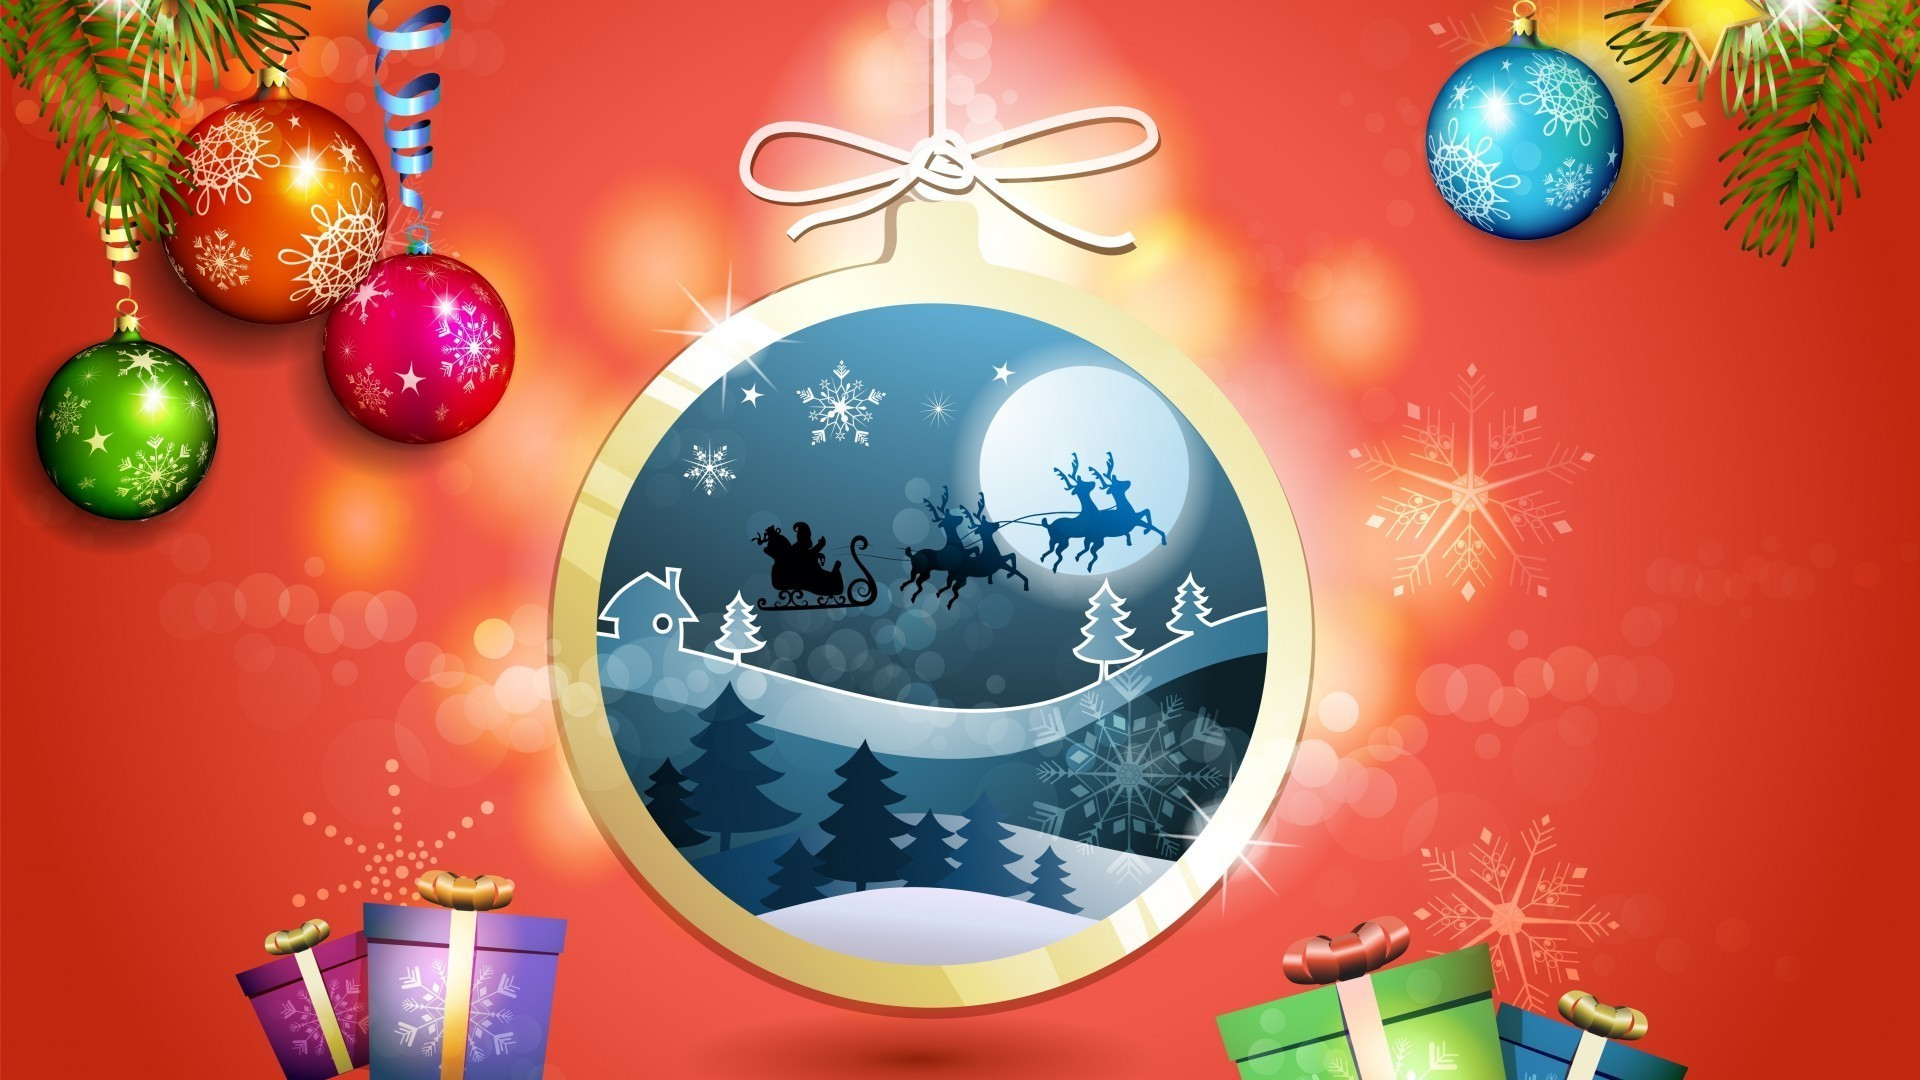 christmas wallpaper android wallpapers for free - Christmas Wallpaper For Android